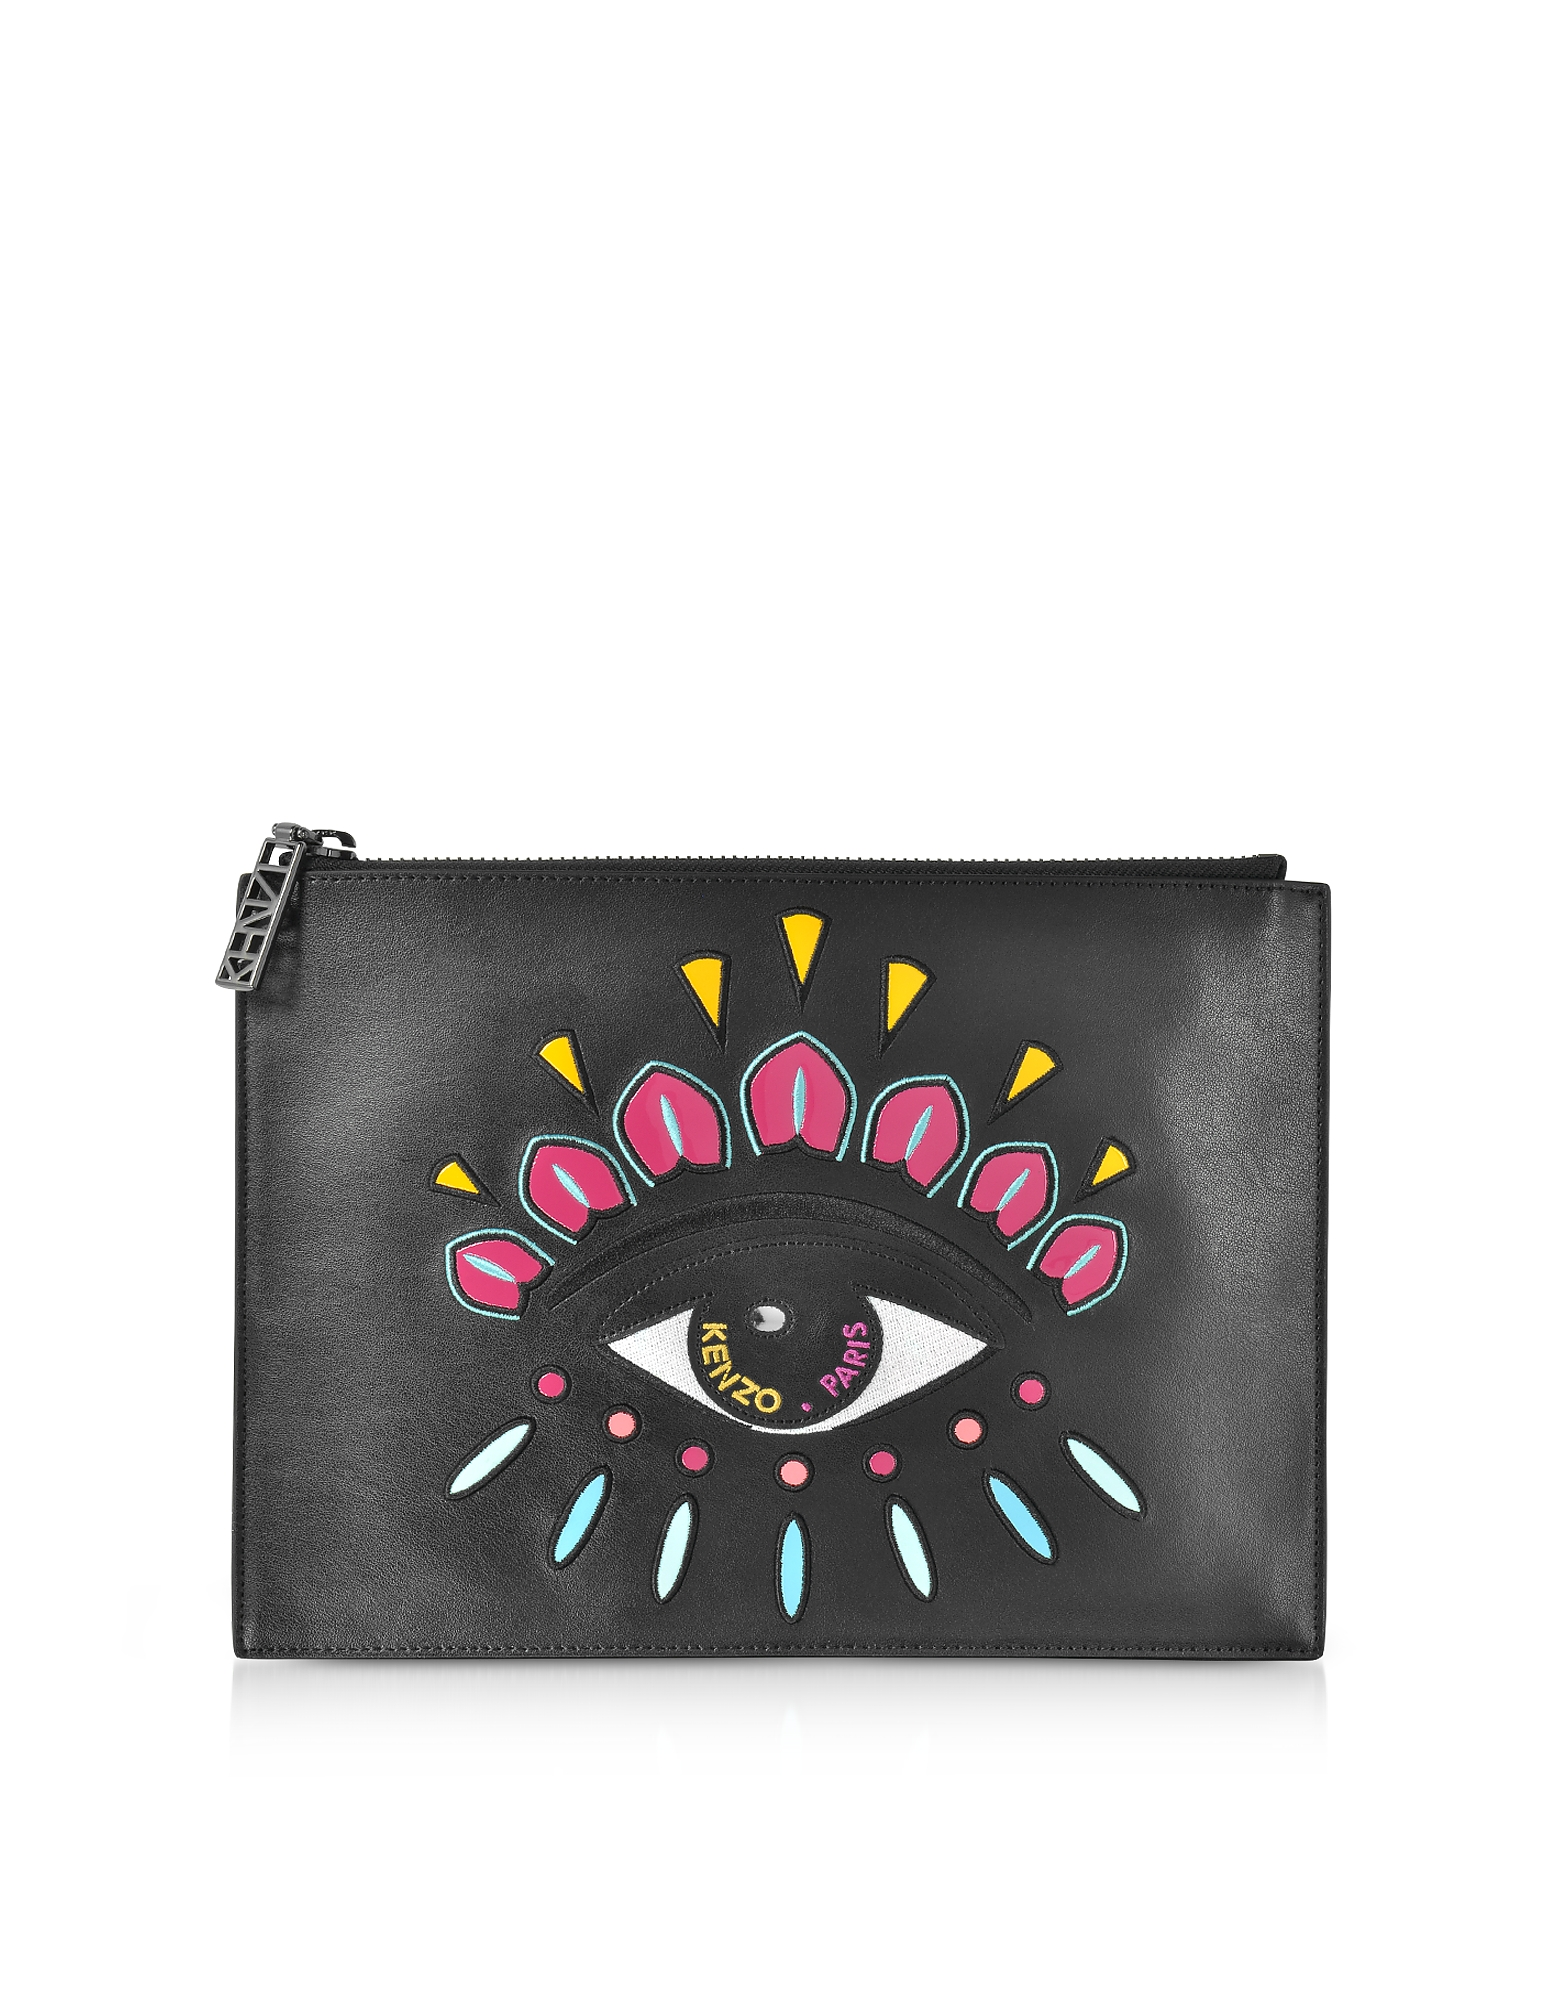 Kenzo Handbags, Black Leather A4 Eye Clutch